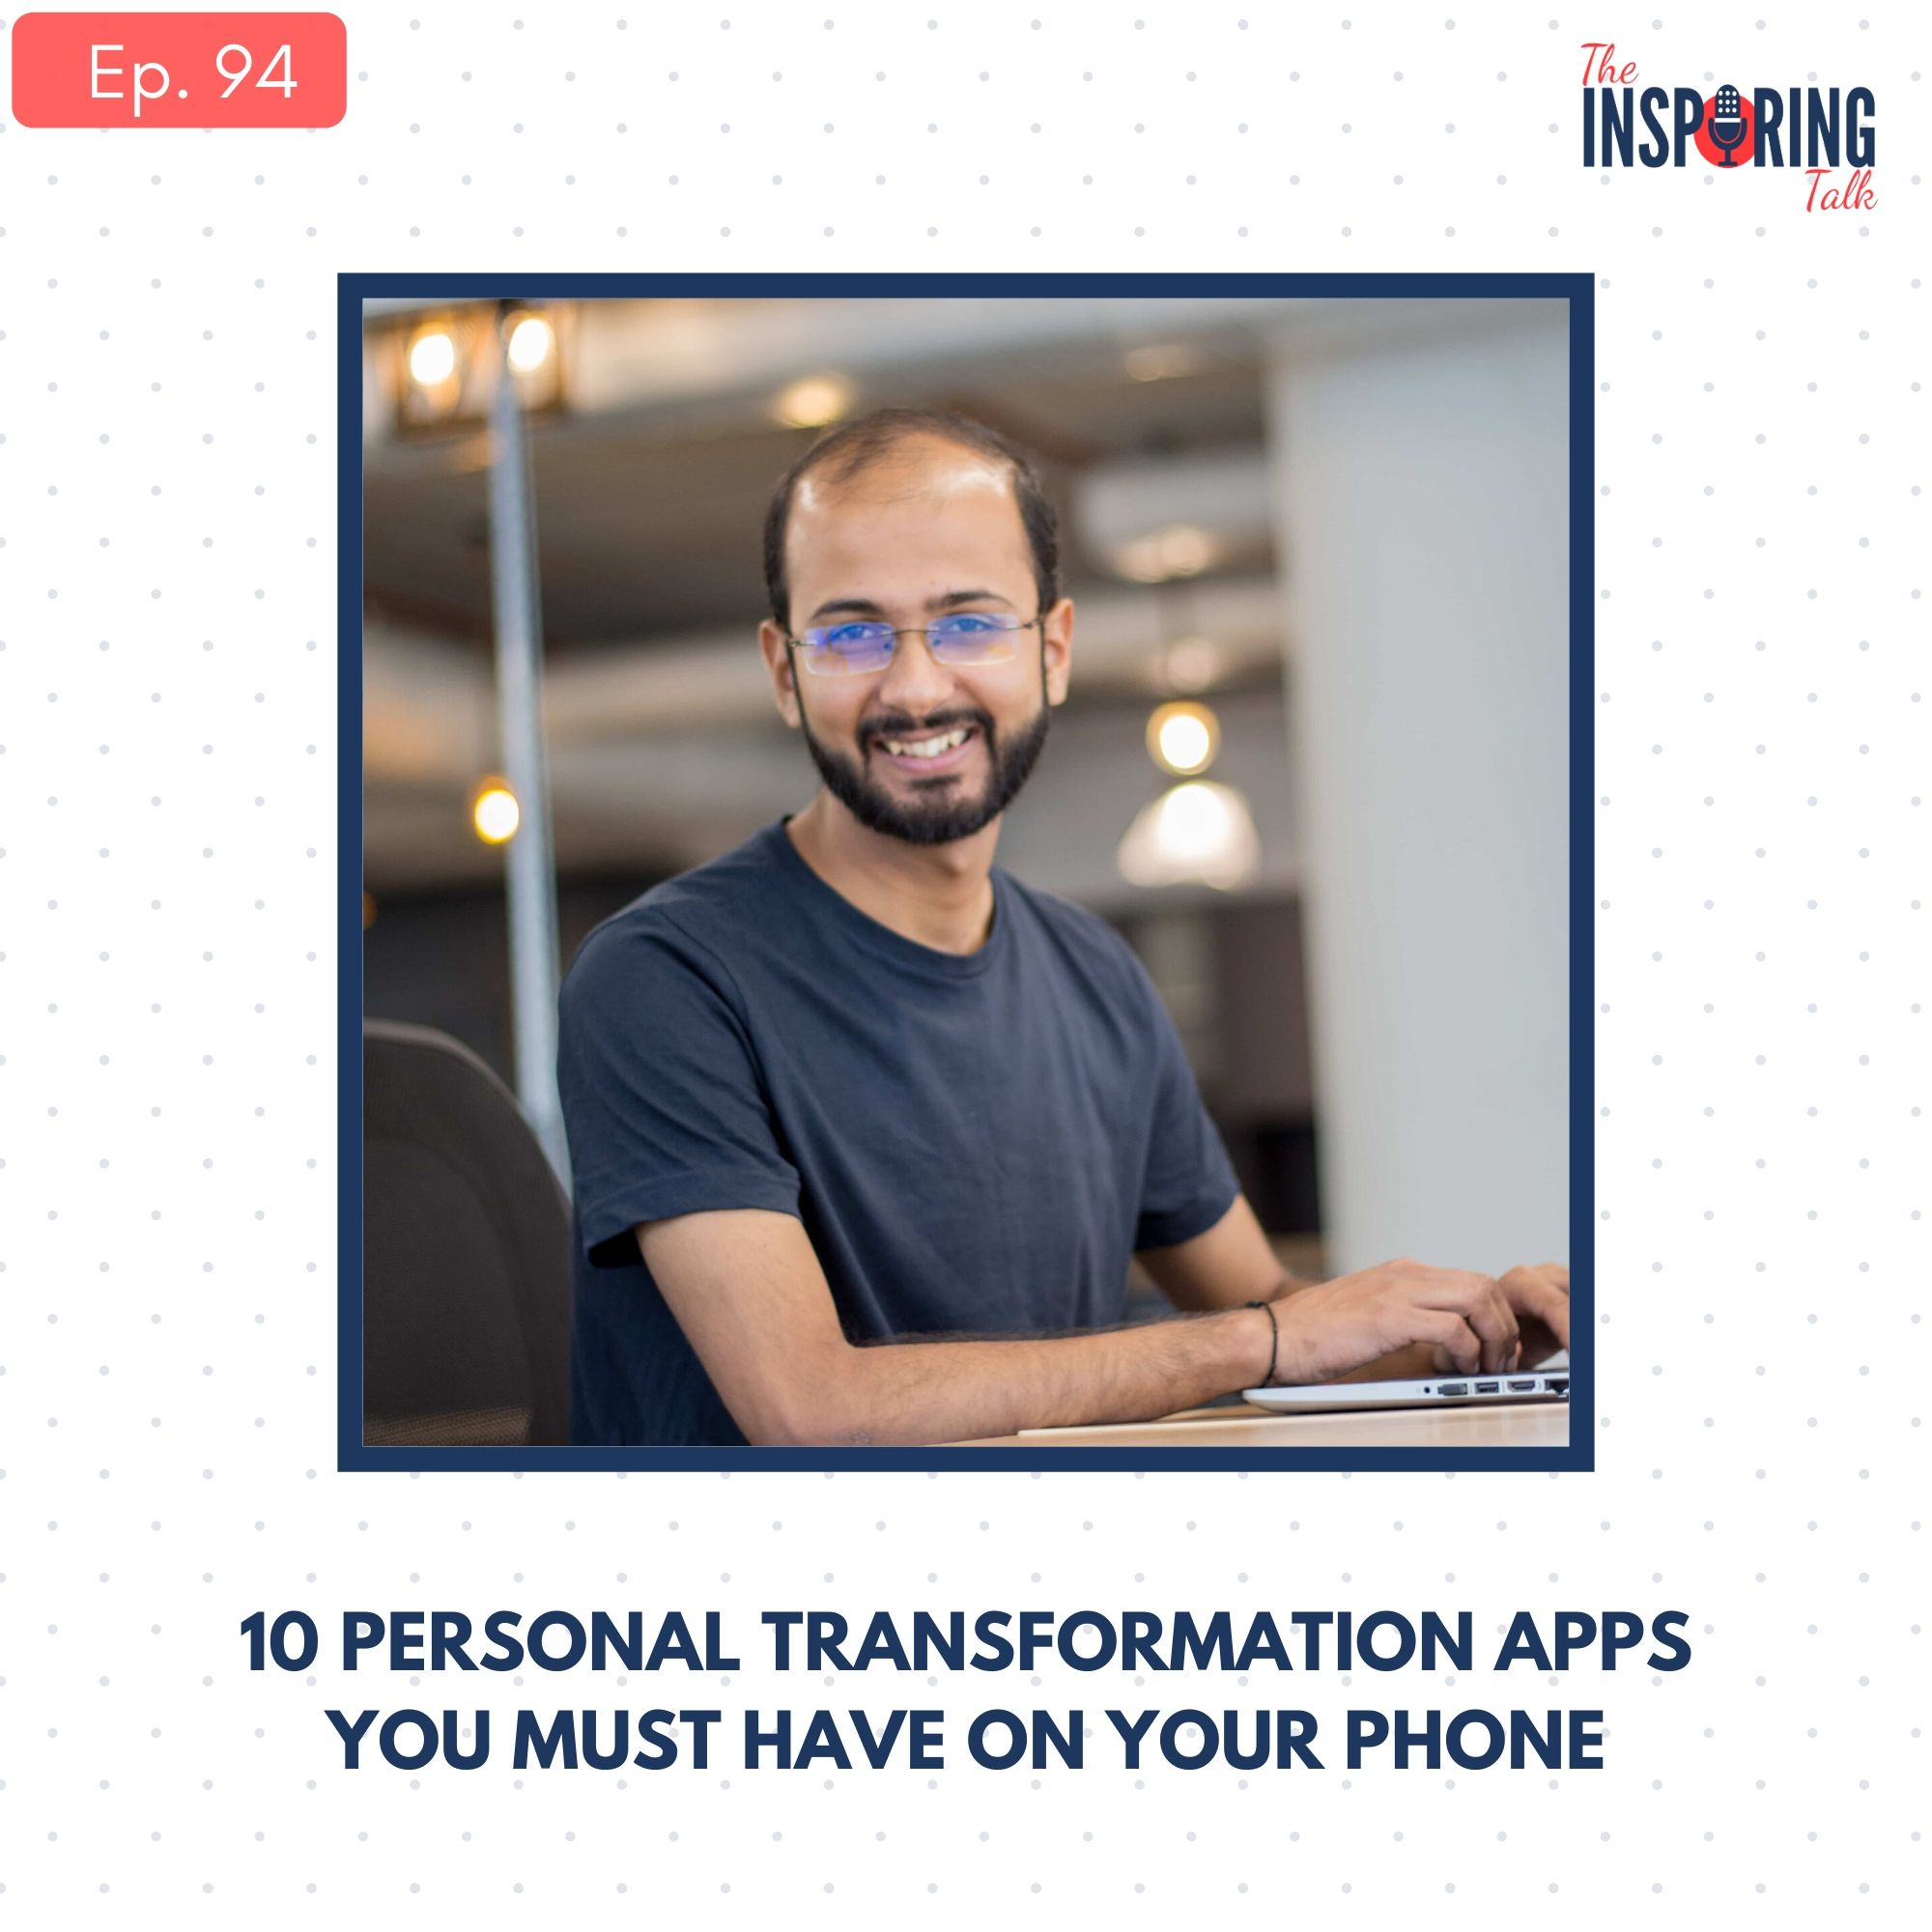 My Top 10 Personal Transformation Apps Recommendation: TIT94